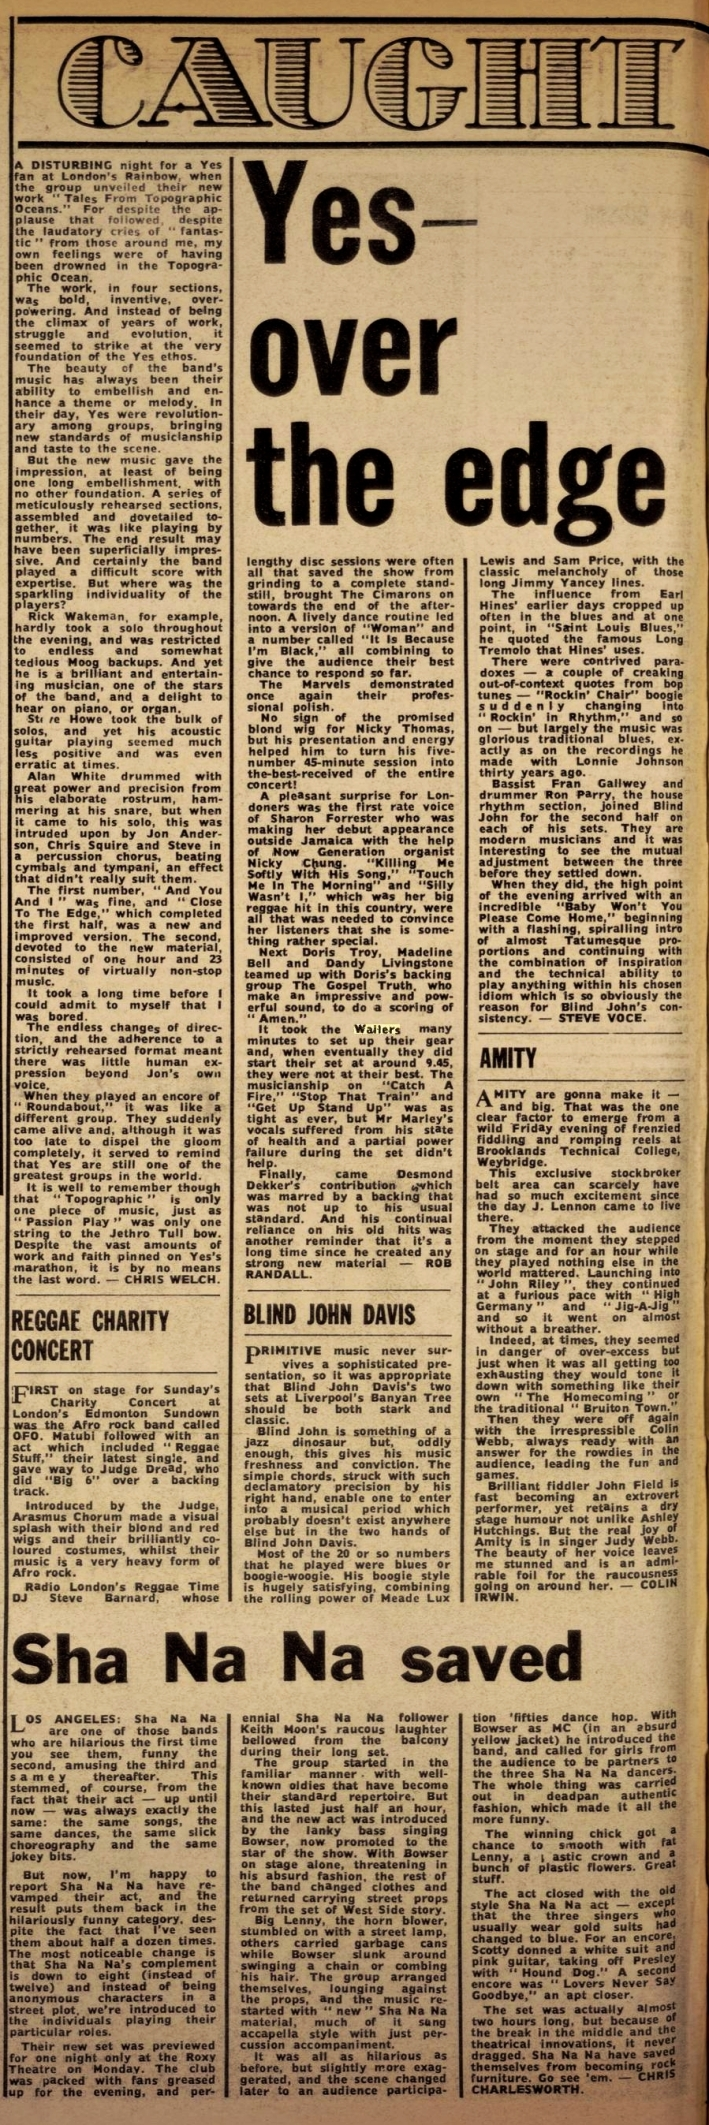 Melody Maker wailers (Dec 1, 1973)